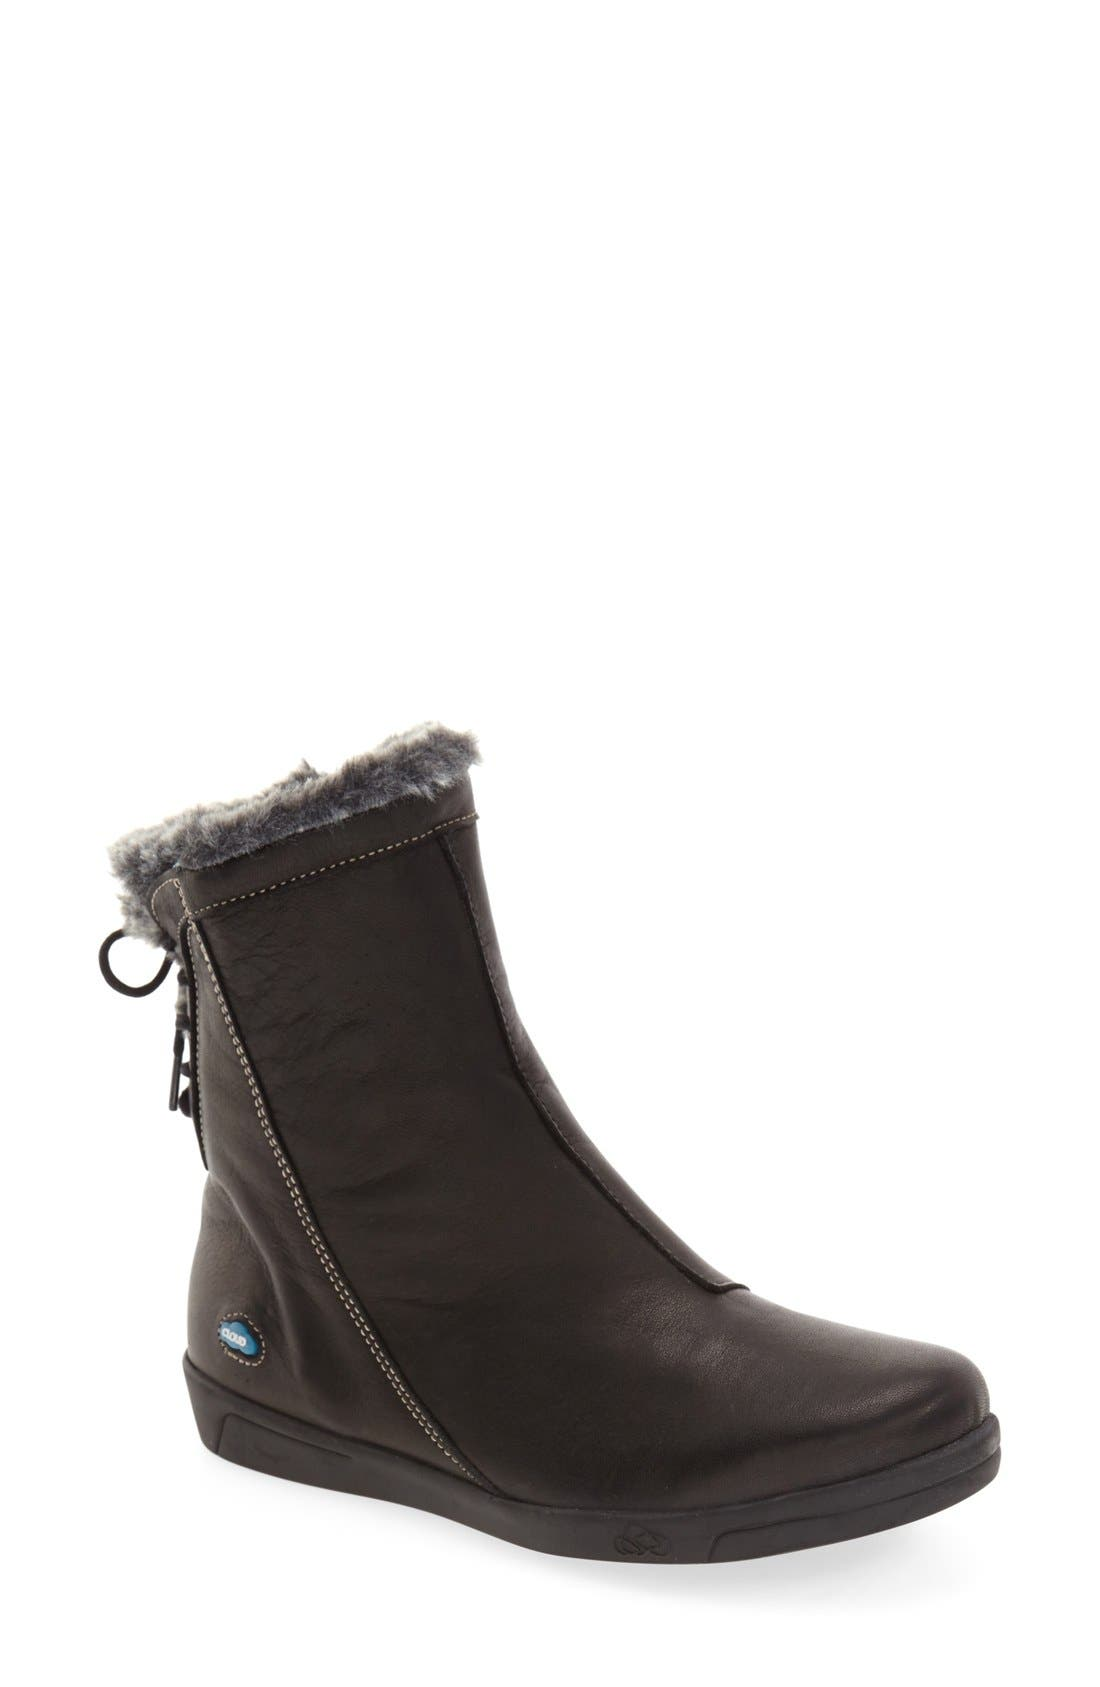 'Aryana' Boot,                             Main thumbnail 1, color,                             BLACK LEATHER